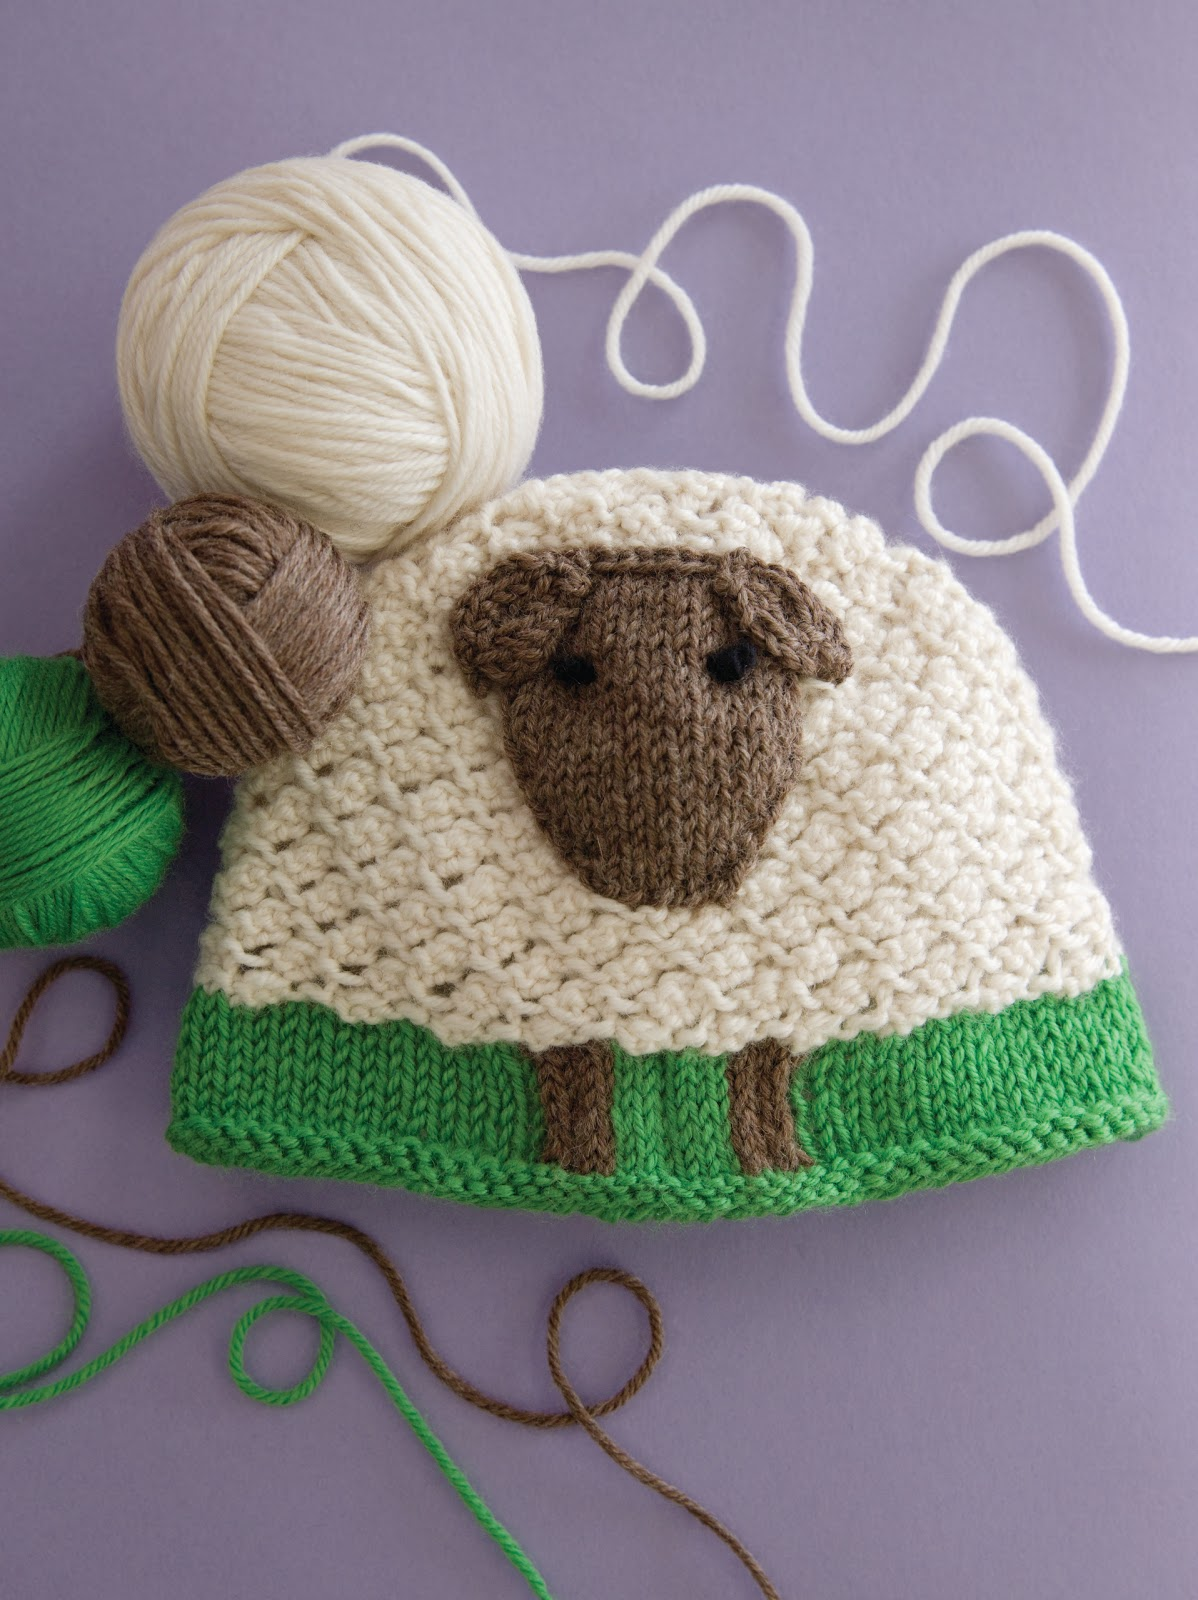 Cascade Yarns Blog: 60 Quick Baby Knits Preview - Sheep Hat by Renee Lorion